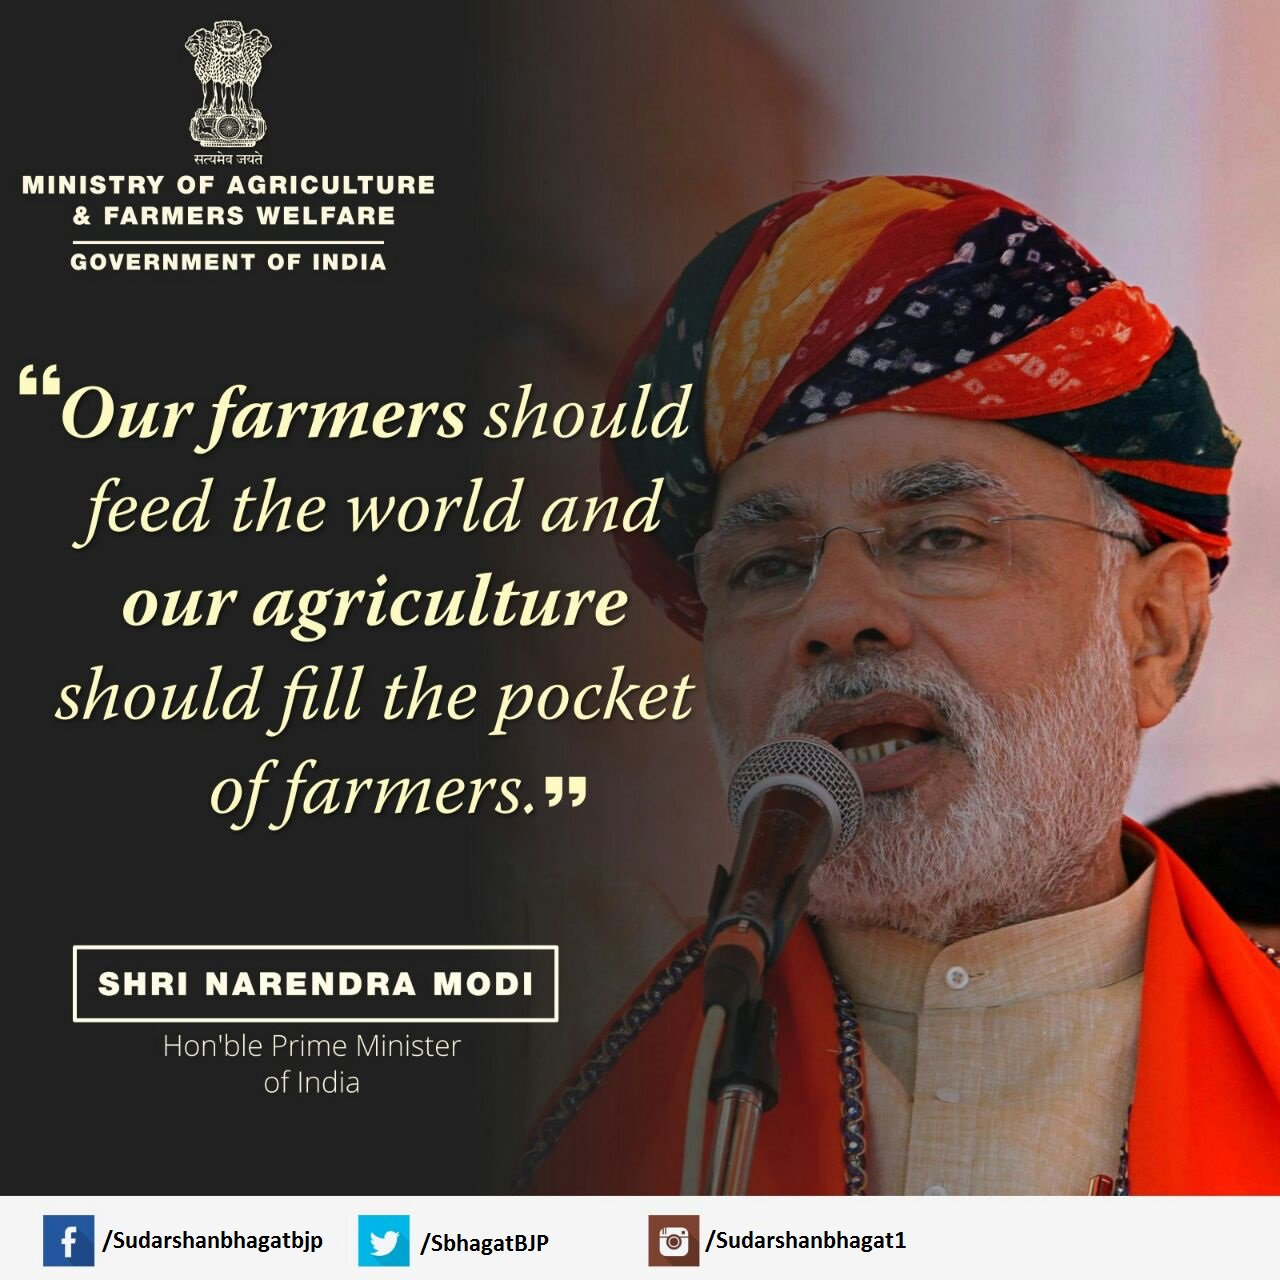 """""""Our farmers should feed the world and our agriculture should fill the pocket of farmers"""" #TransformingIndia https://t.co/W9VeuHHoVx"""